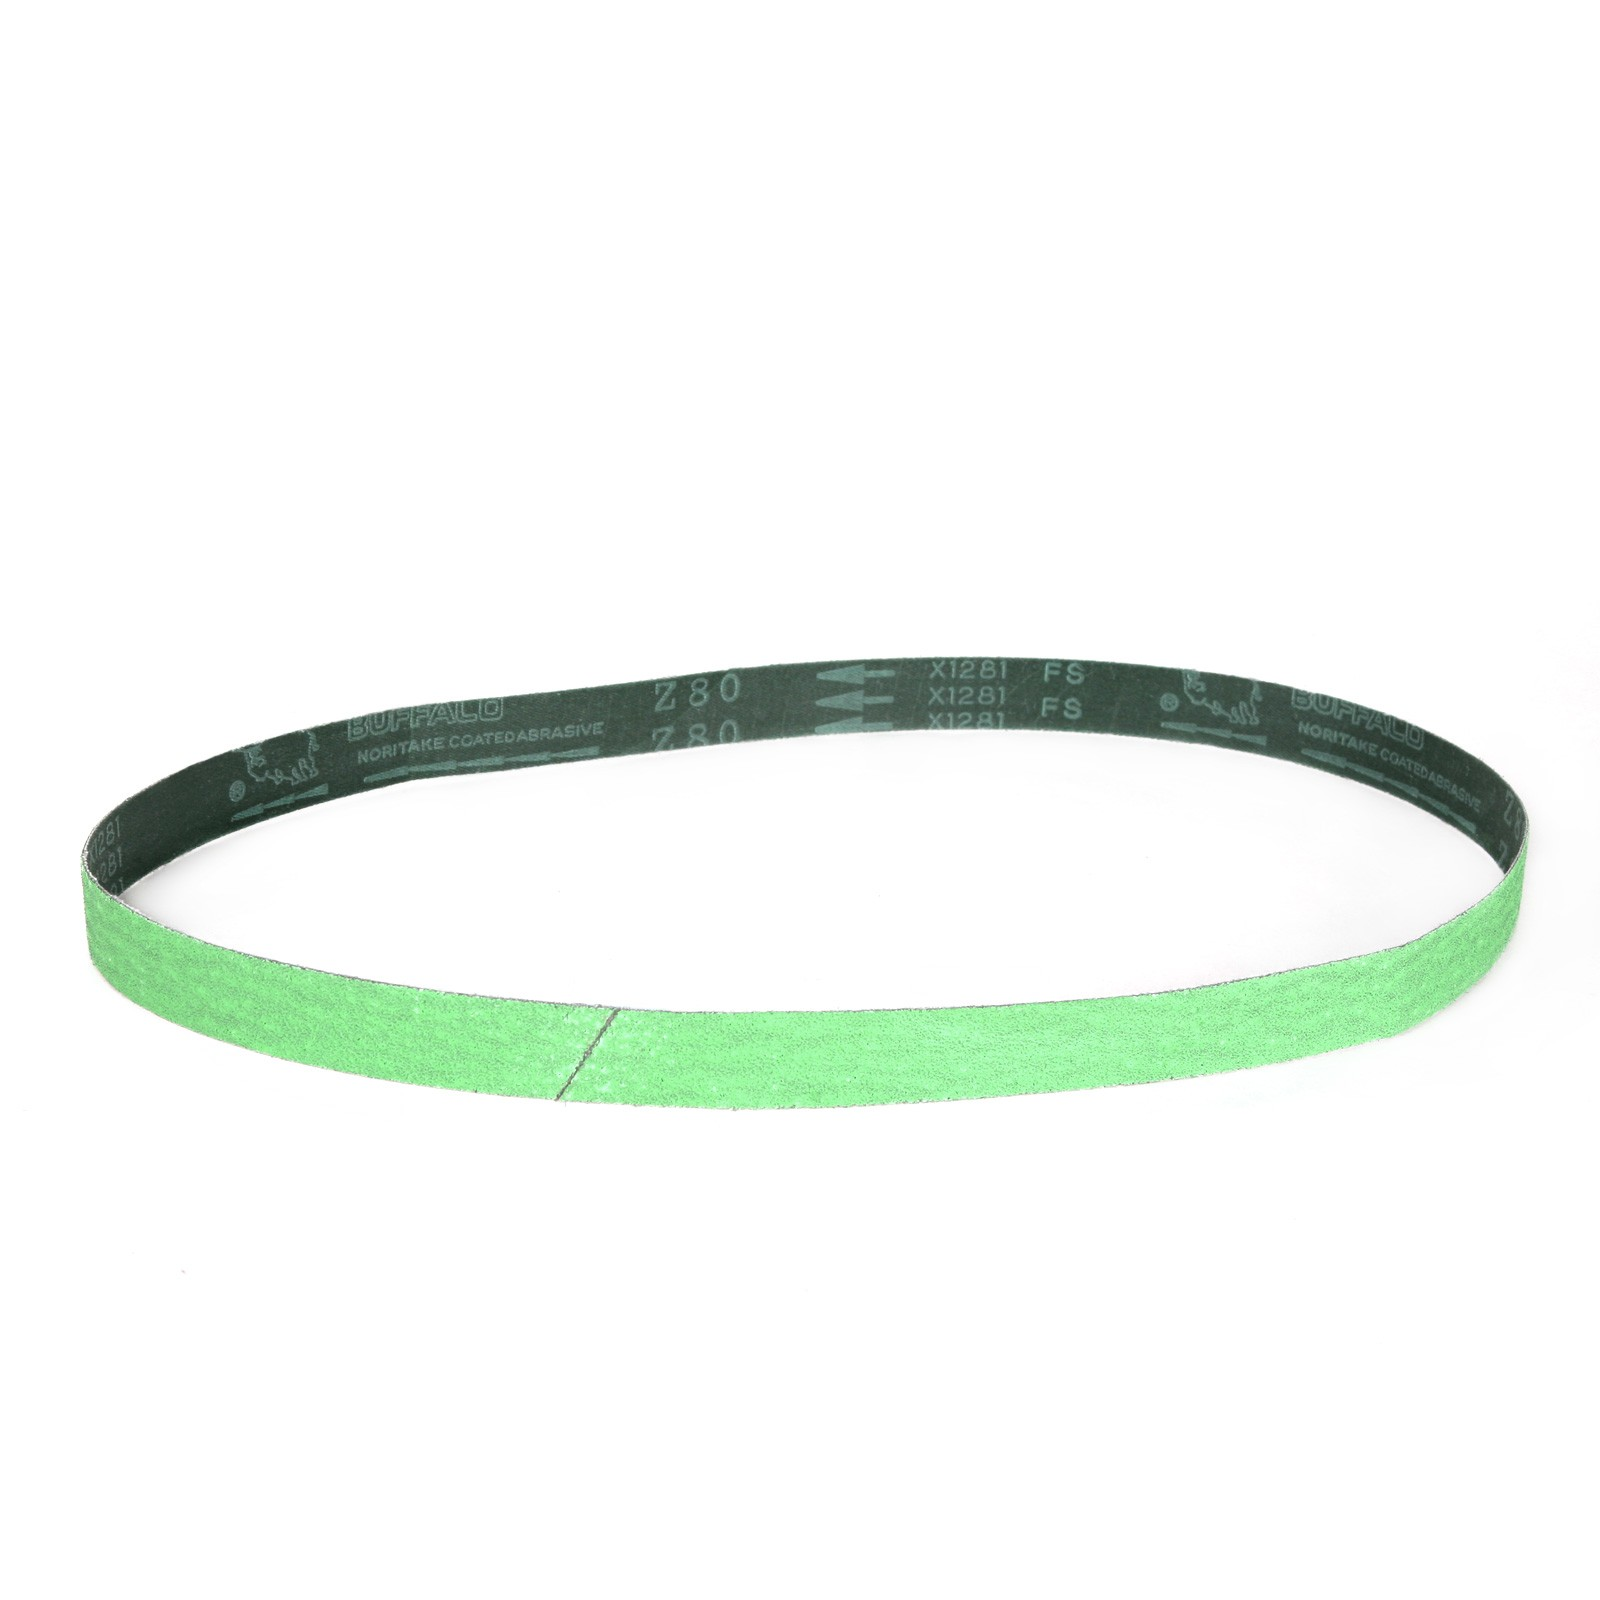 Steel Shaft Sanding Belt - 1 inch X 42 inch